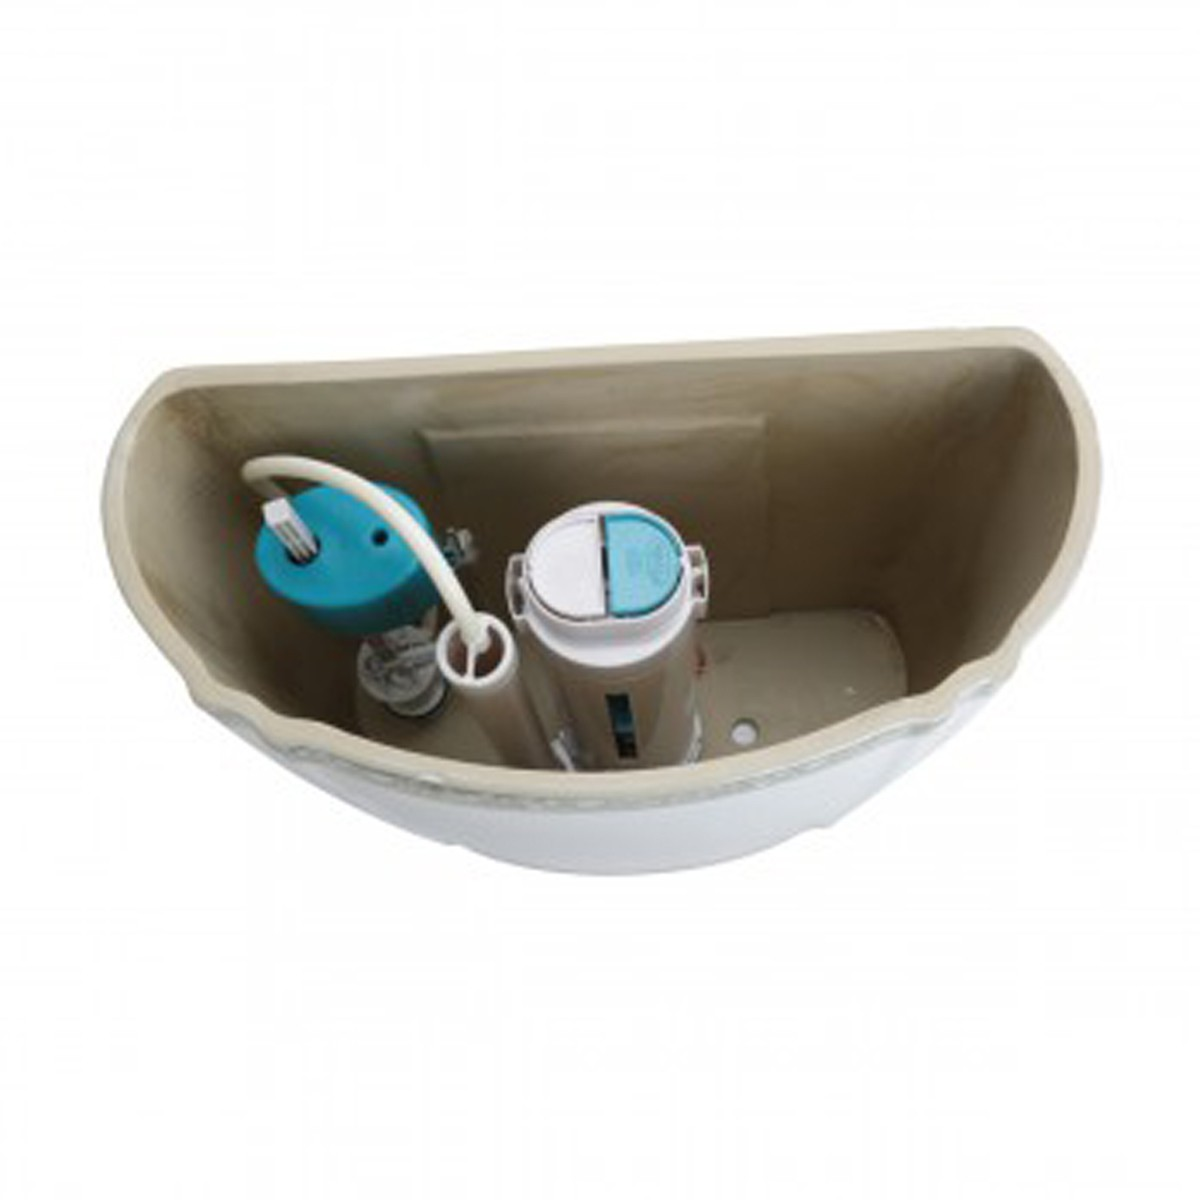 Green and Gold Toilet Tank for Item 12816